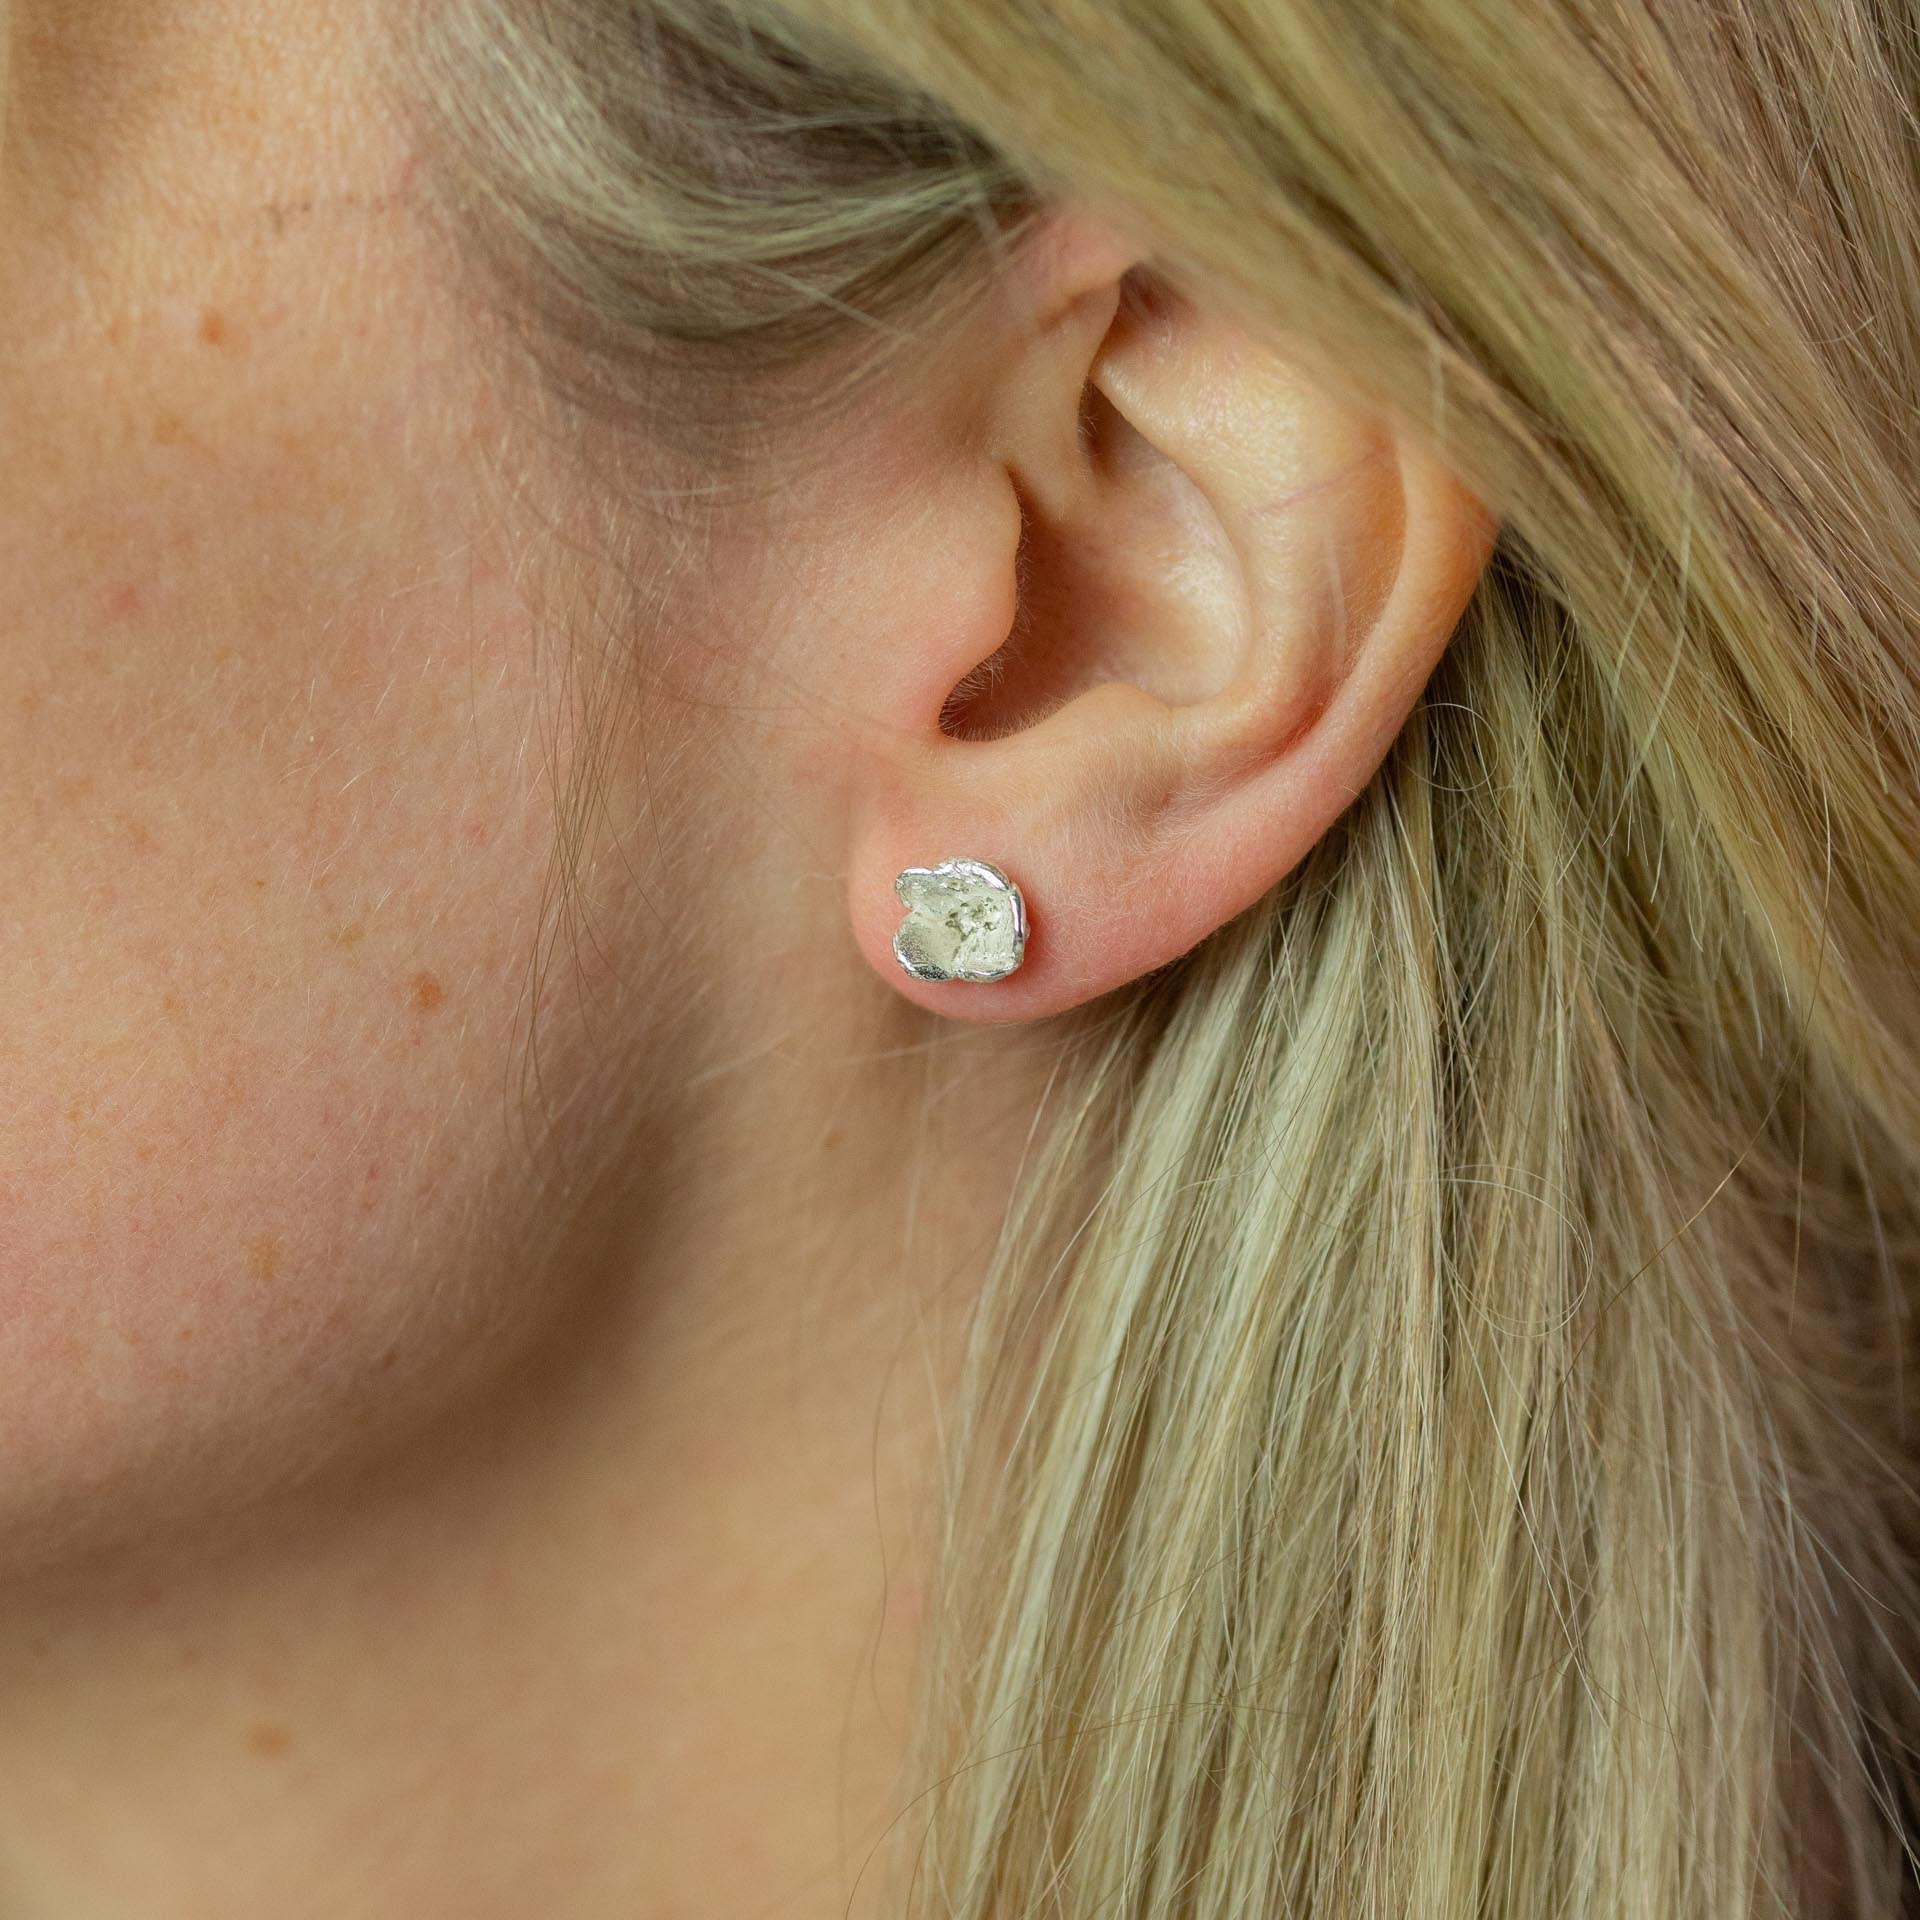 Small Blueweed Flower Stud Earrings modelled in ear